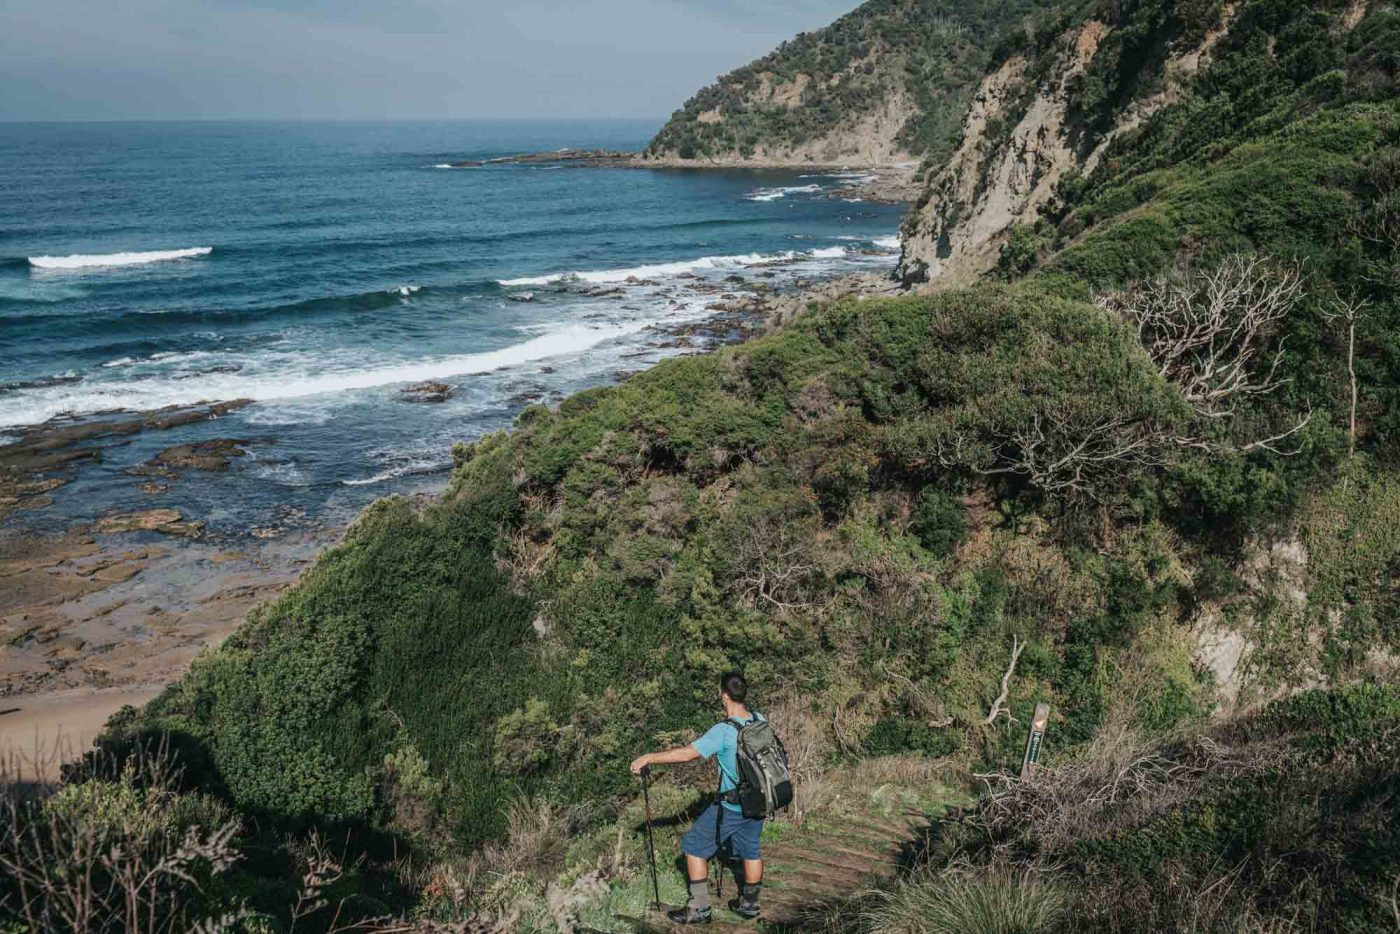 Day hikes along the Great Ocean Walk are an easy alternative to a long 8 day hike!